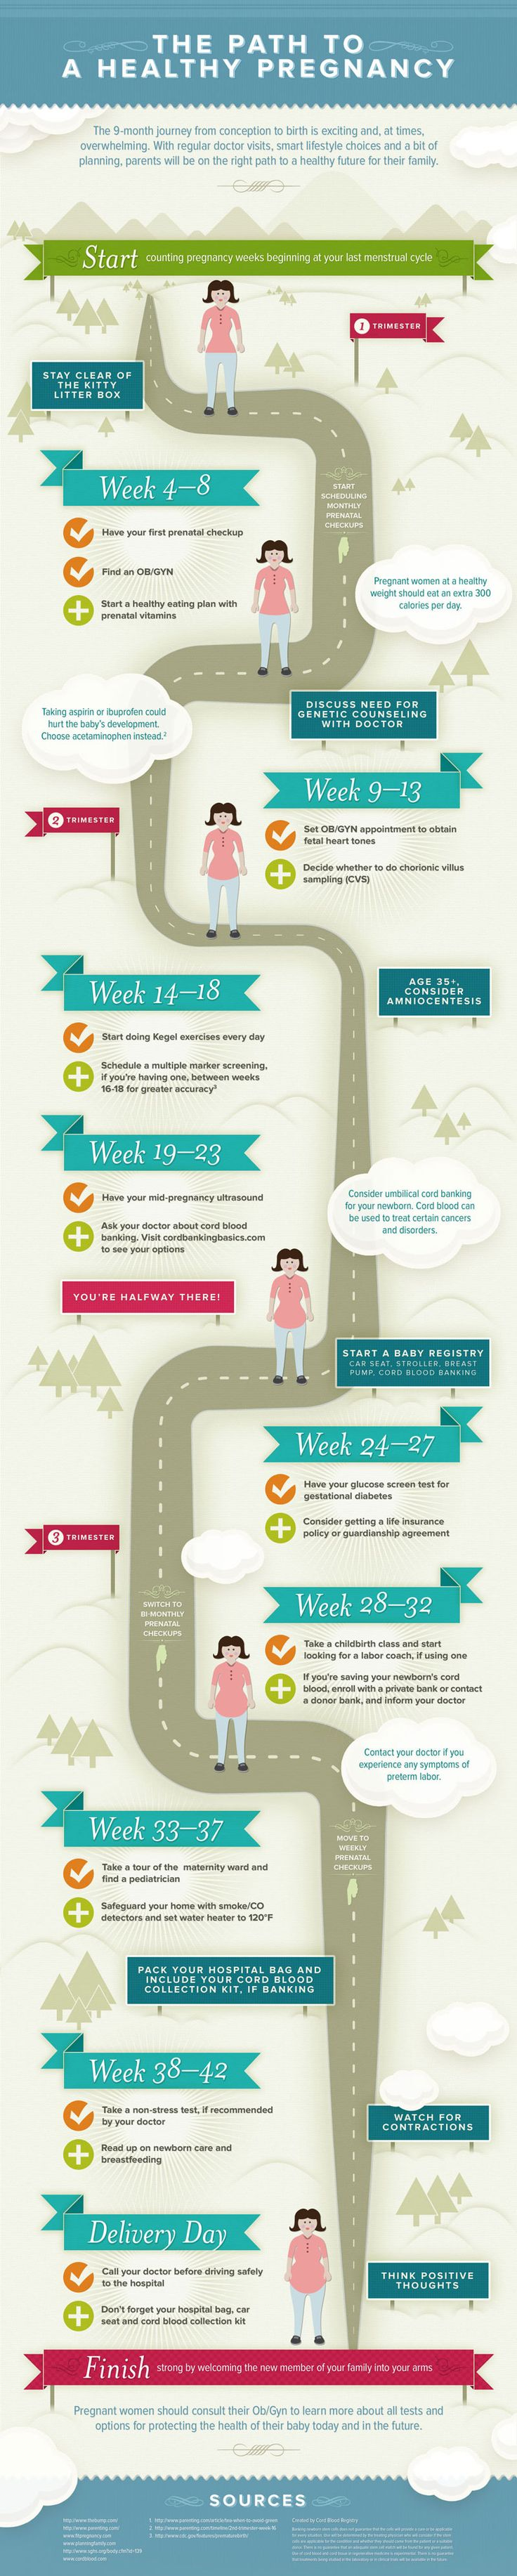 The path to healthy pregnancy #infographic